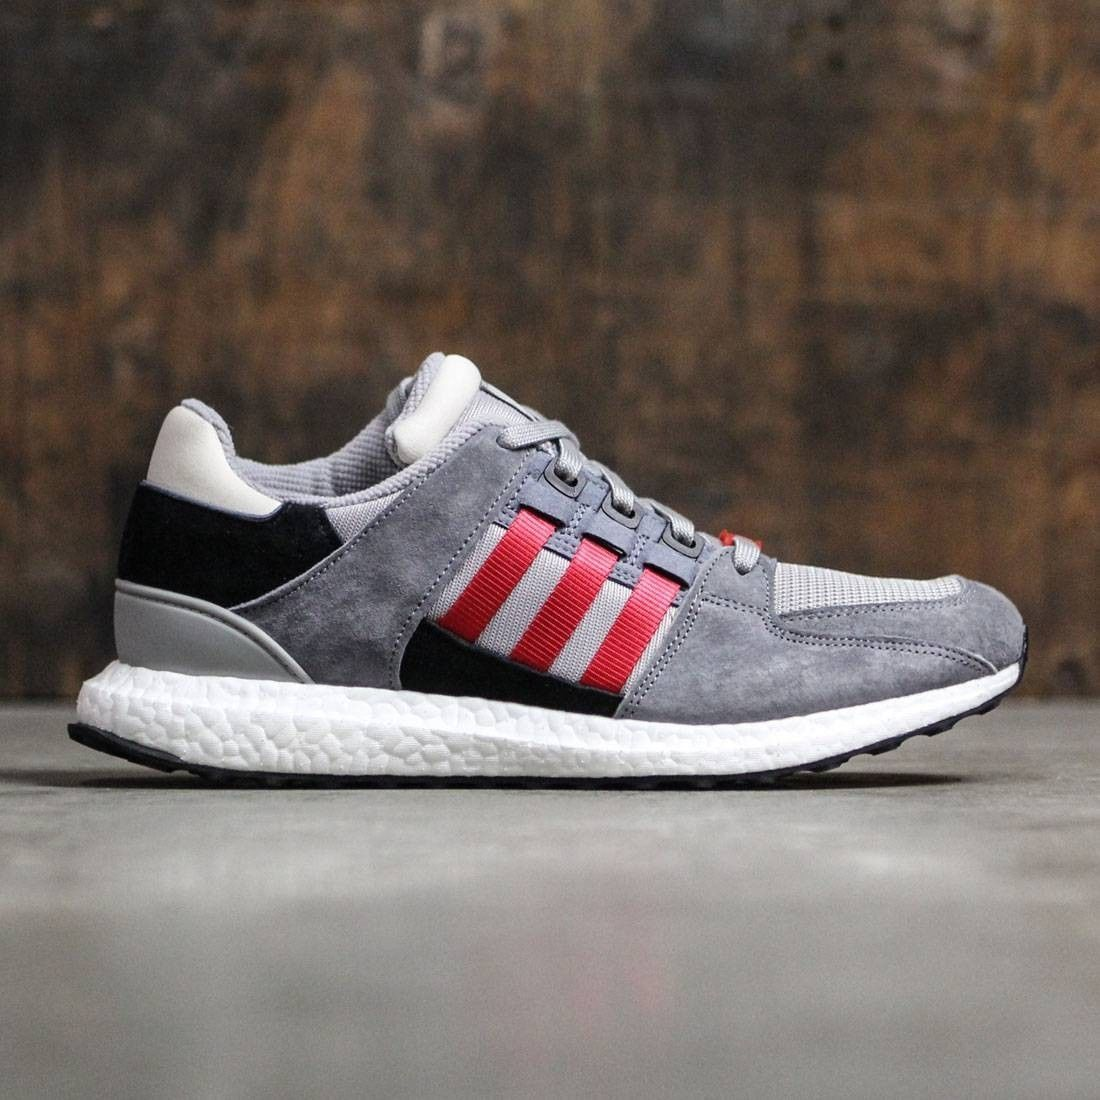 Adidas EQT Support 9316 Red Black White Grey Size 12